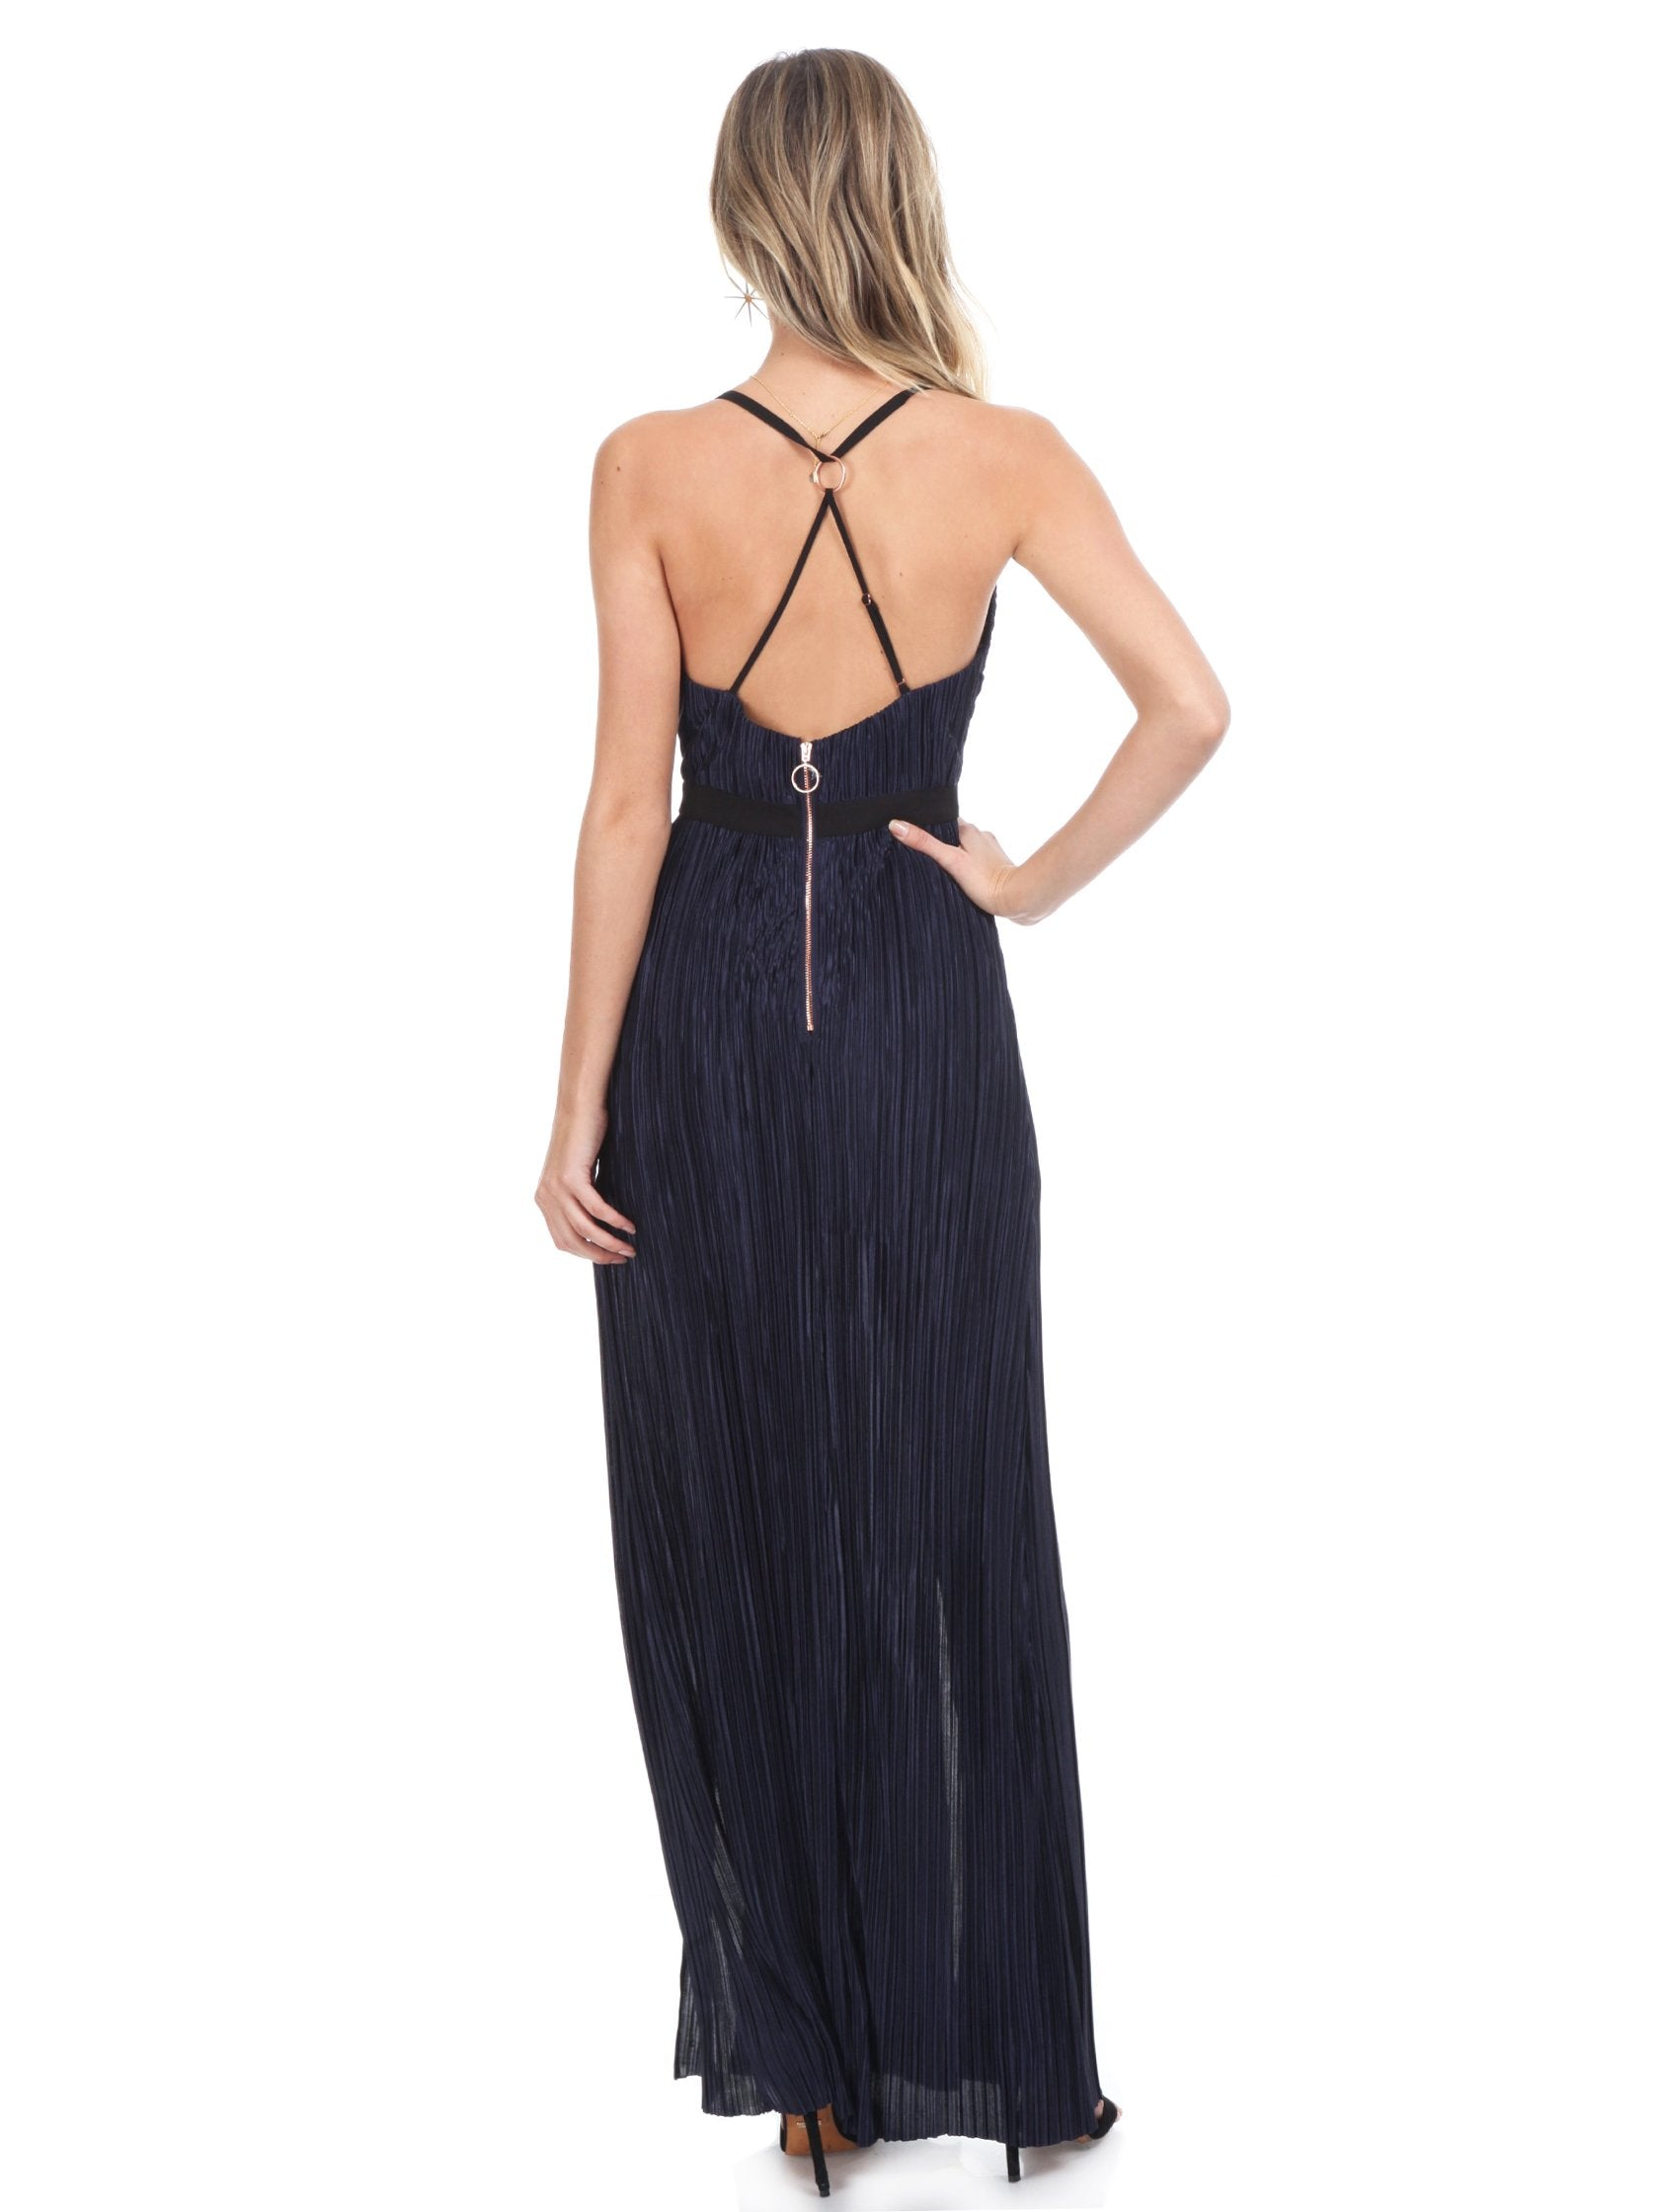 Women wearing a dress rental from STYLESTALKER called Alexa Maxi Dress